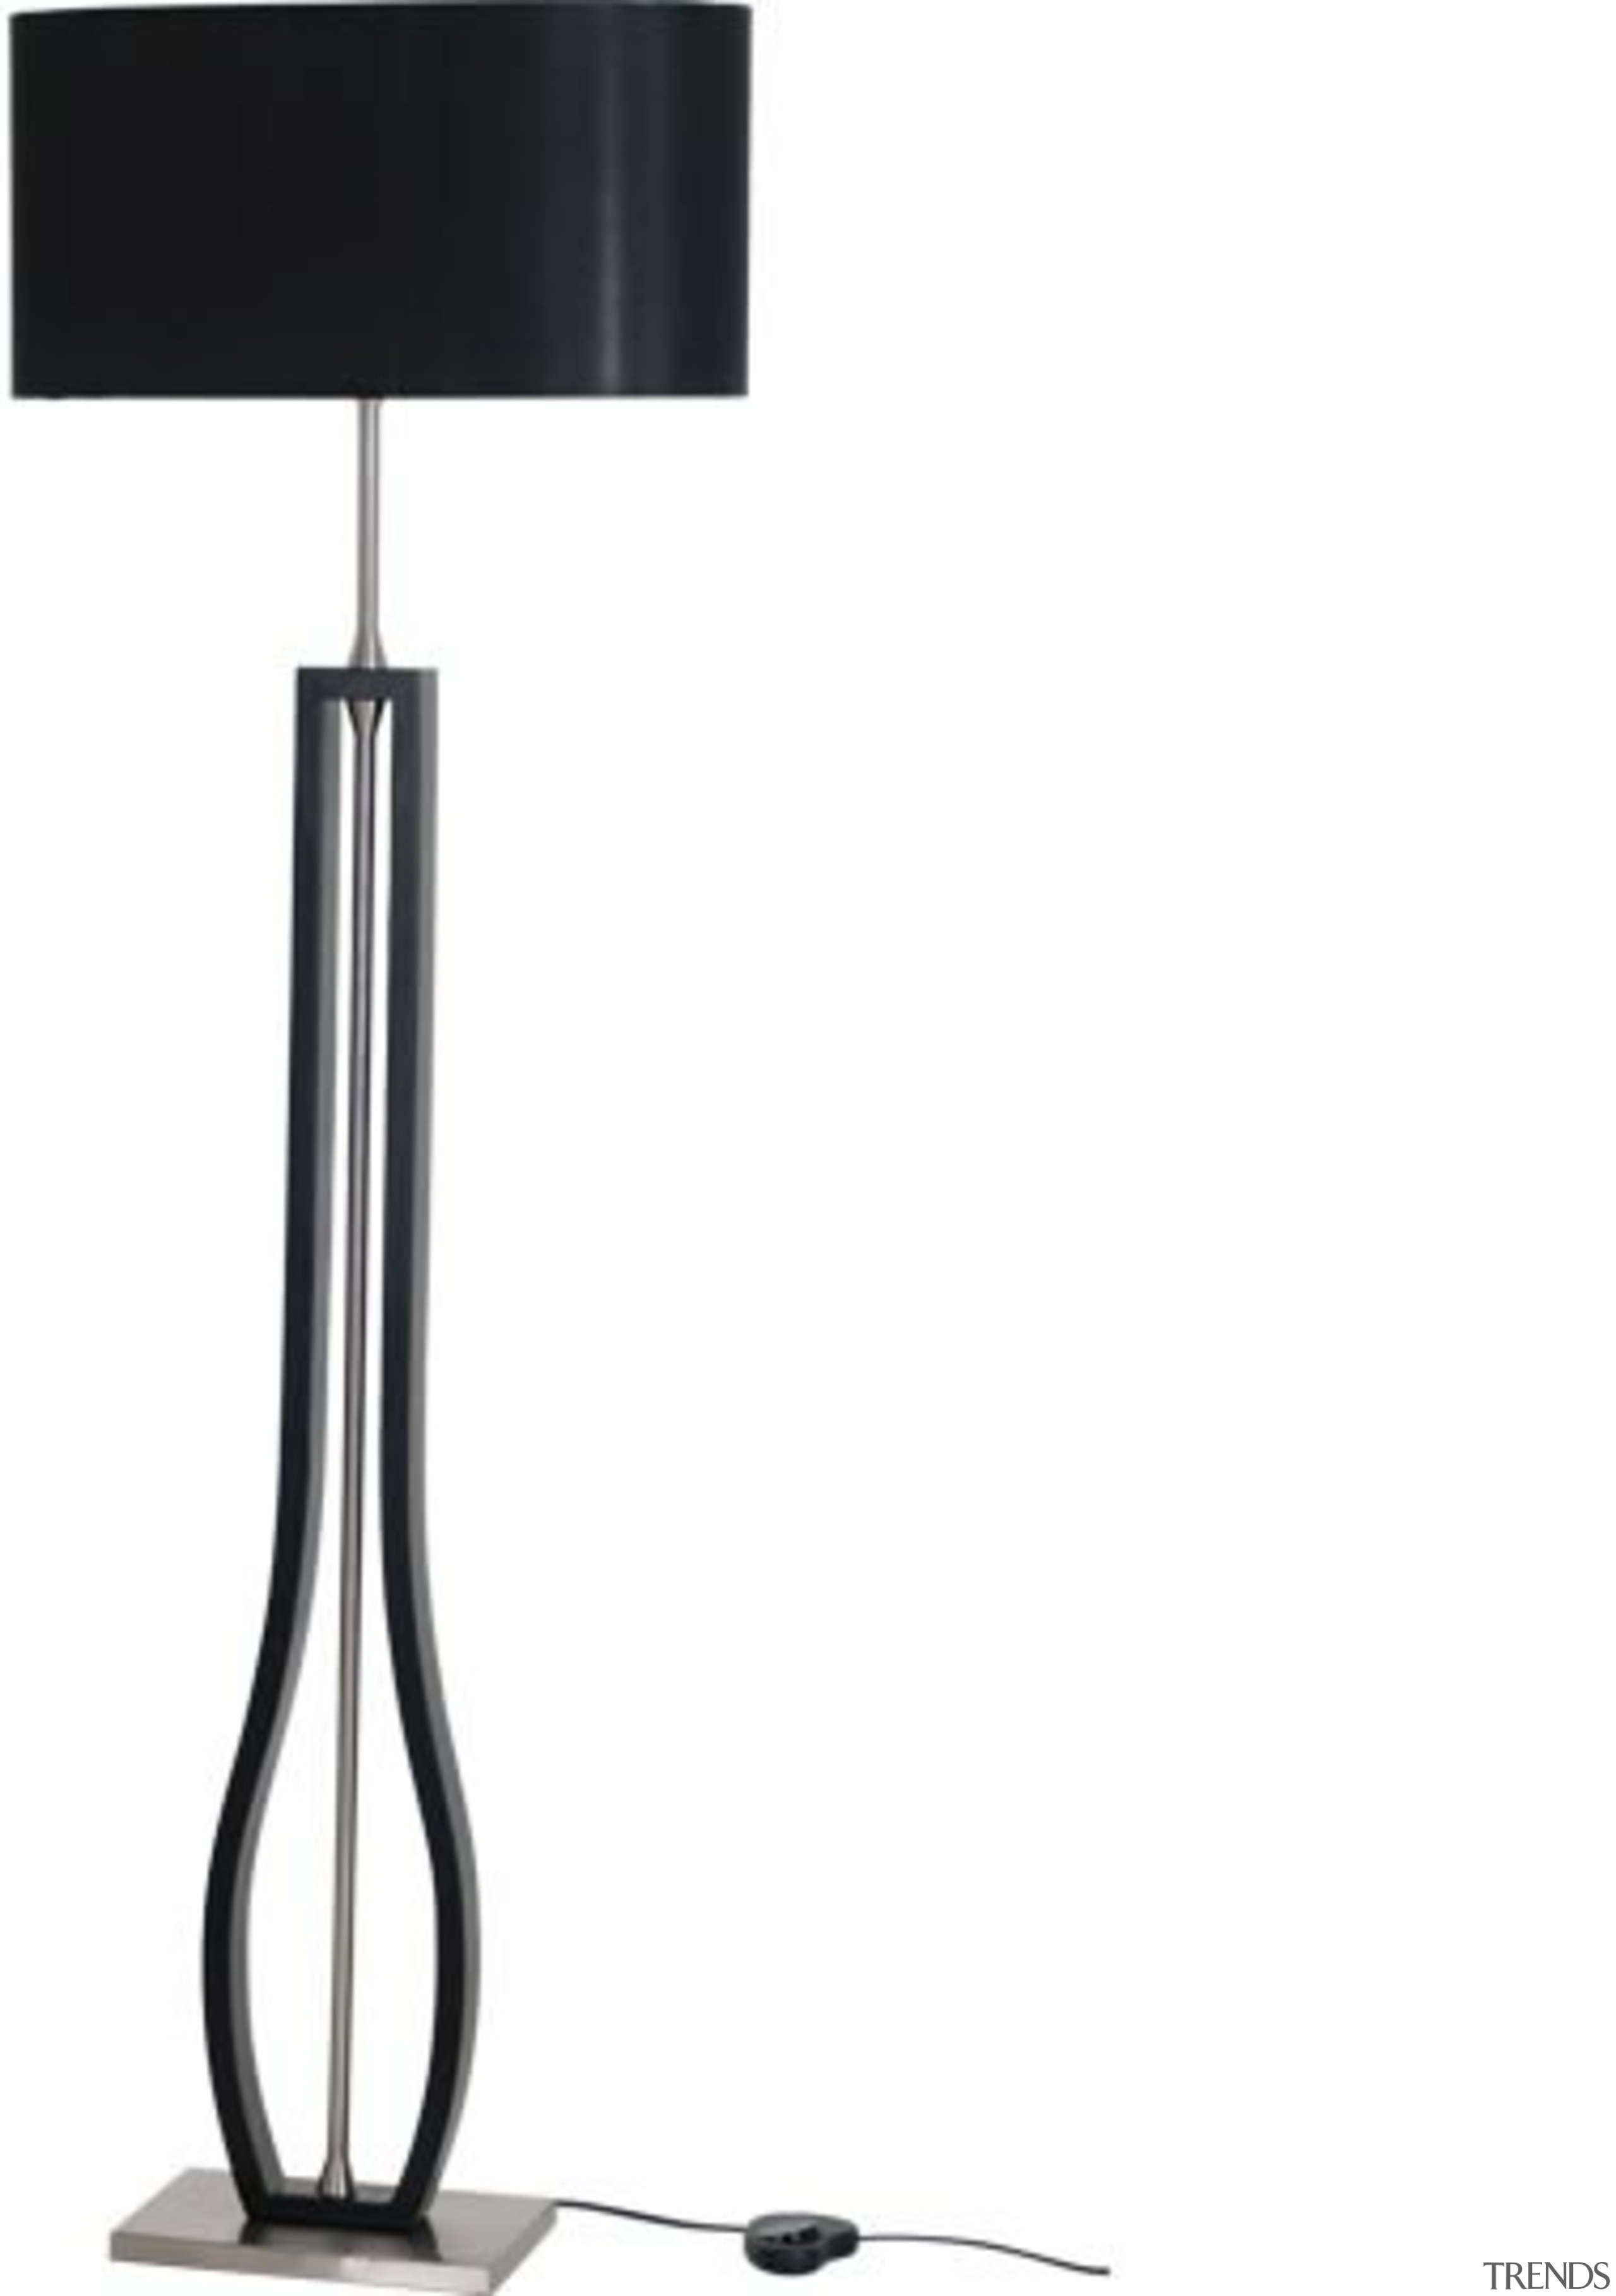 FeaturesA contemporary designer style lamp that features an lamp, light fixture, lighting, product, product design, white